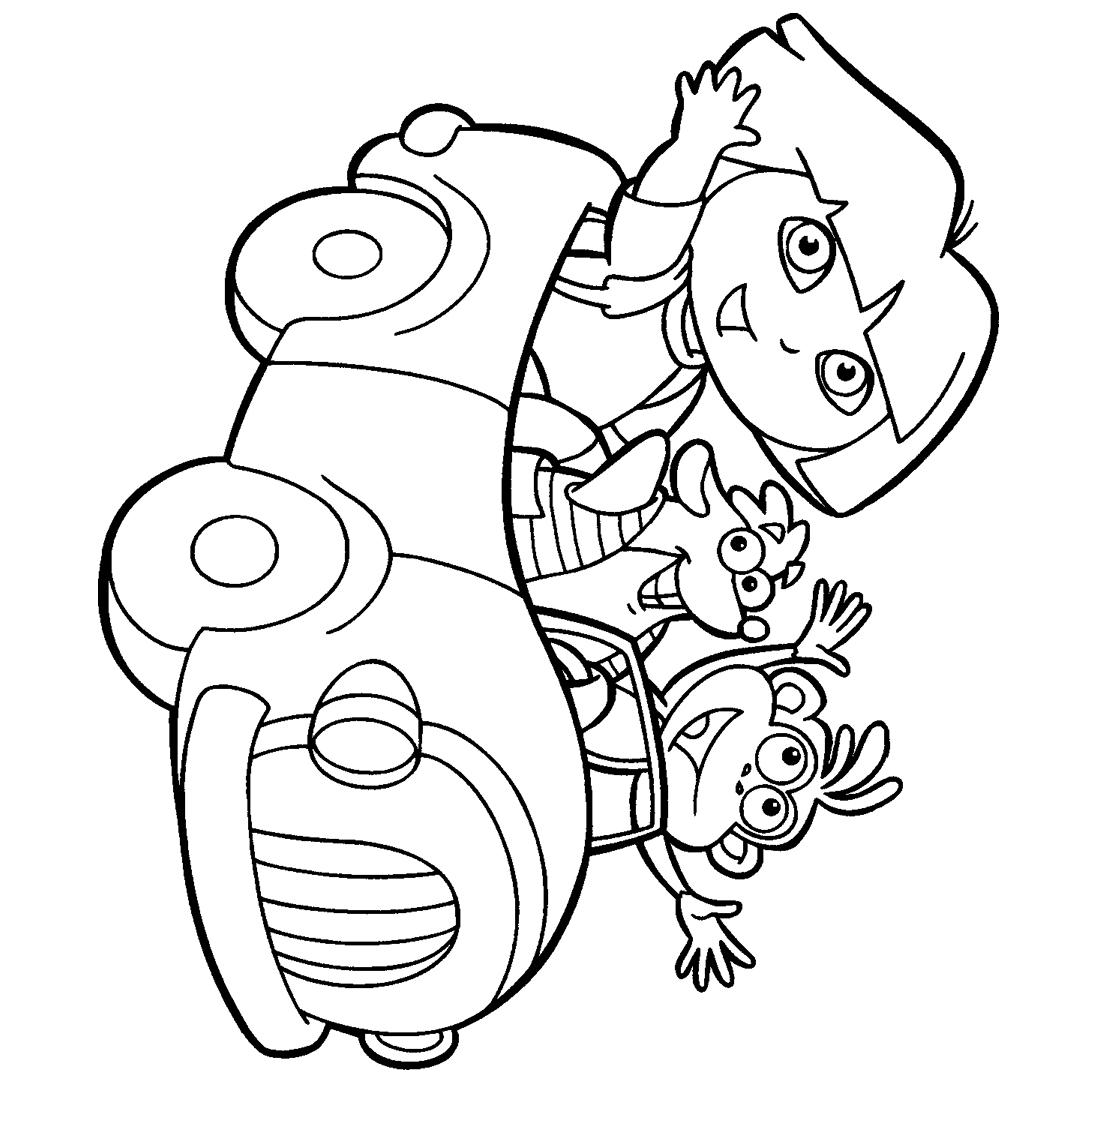 dora coloring pages to print dora colouring pictures coloring pages to print pages to coloring dora print